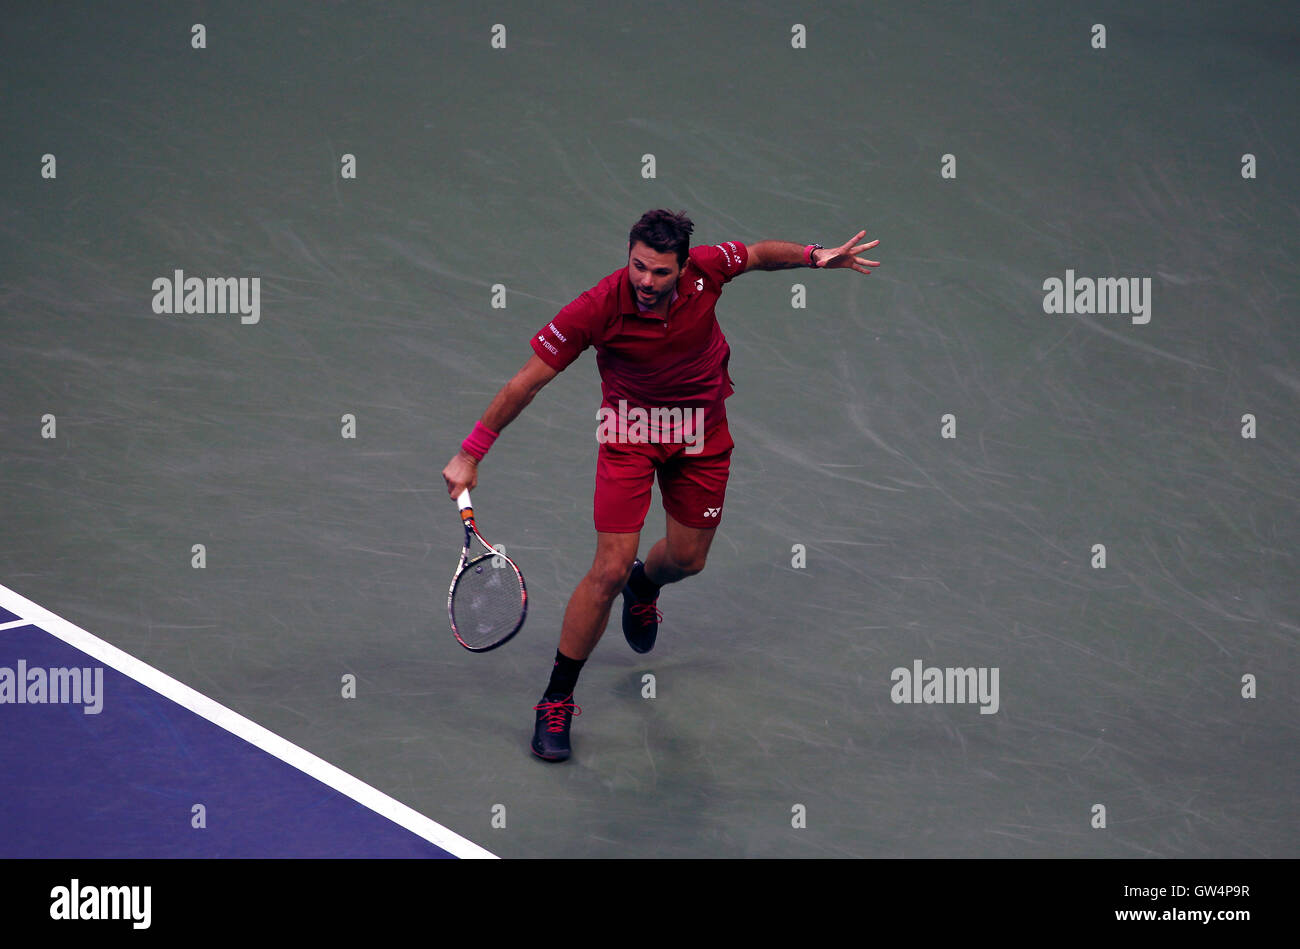 New York, United States. 11th Sep, 2016. Switzerland's Stan Warwinka during the United States Open Tennis Championships - Stock Image